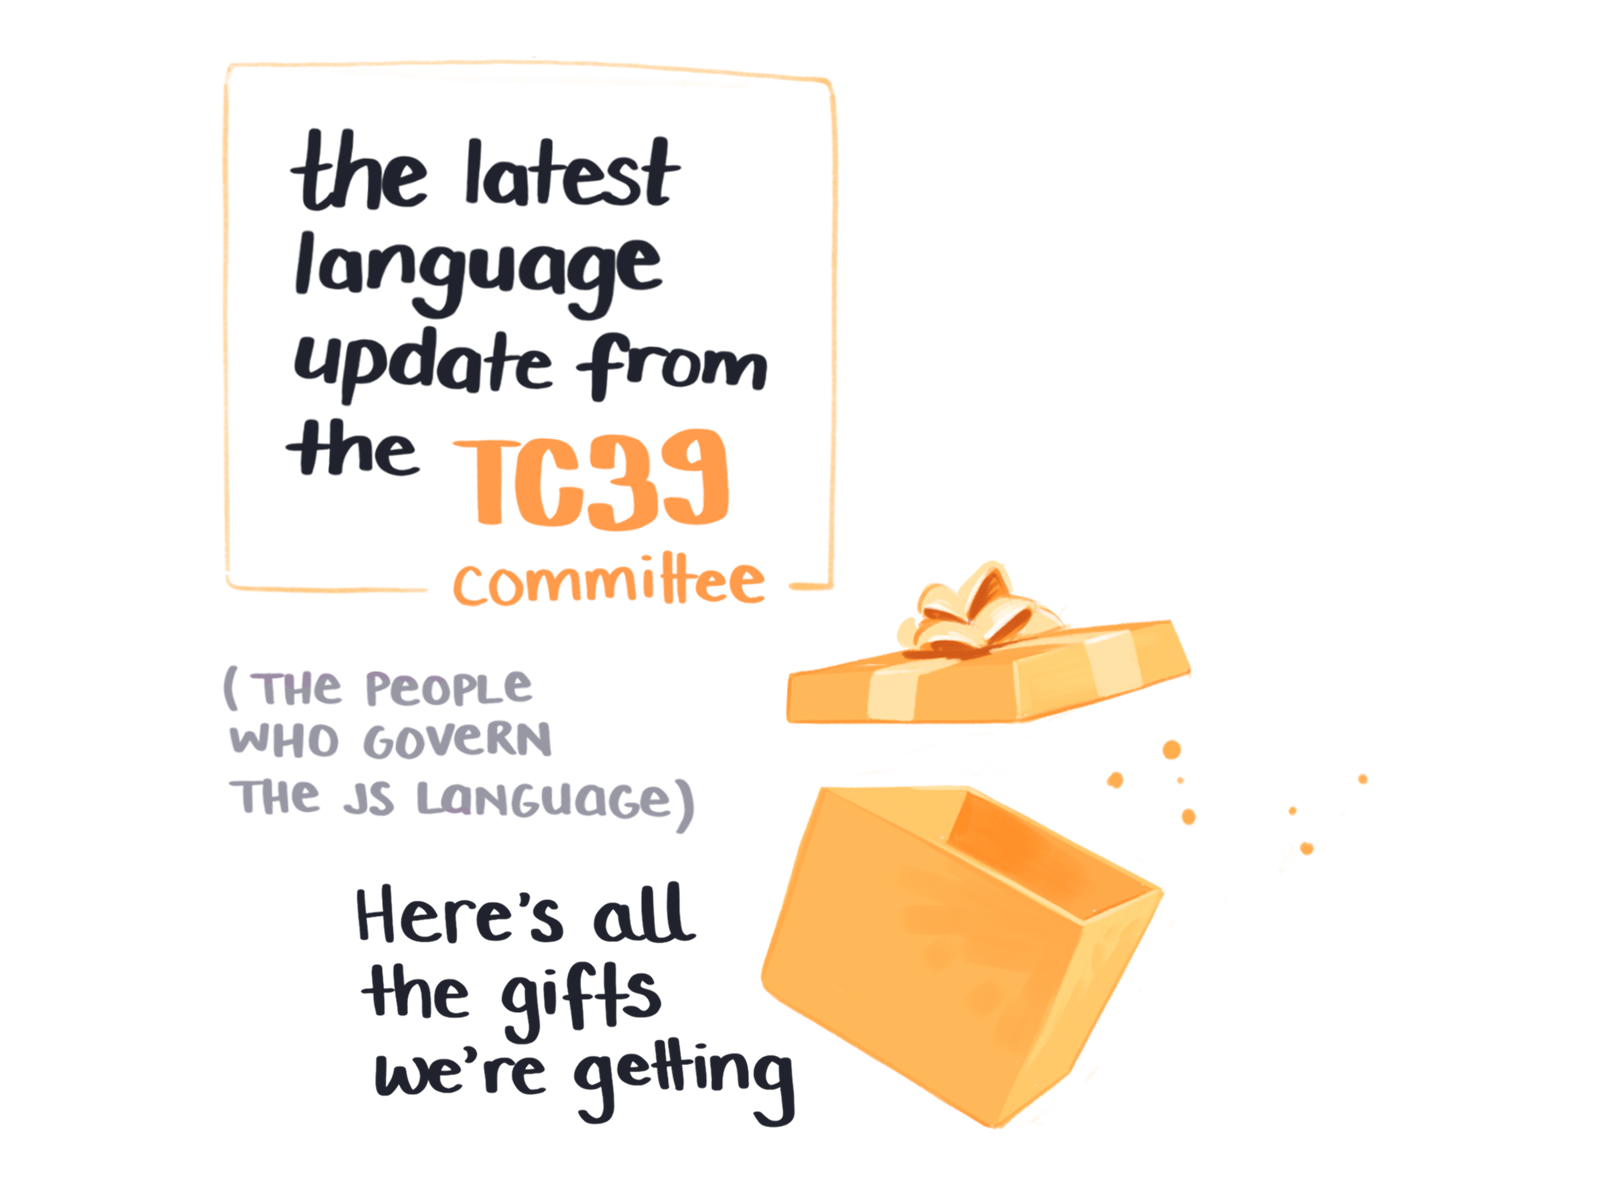 Gifts in the latest language update from the TC39 committee